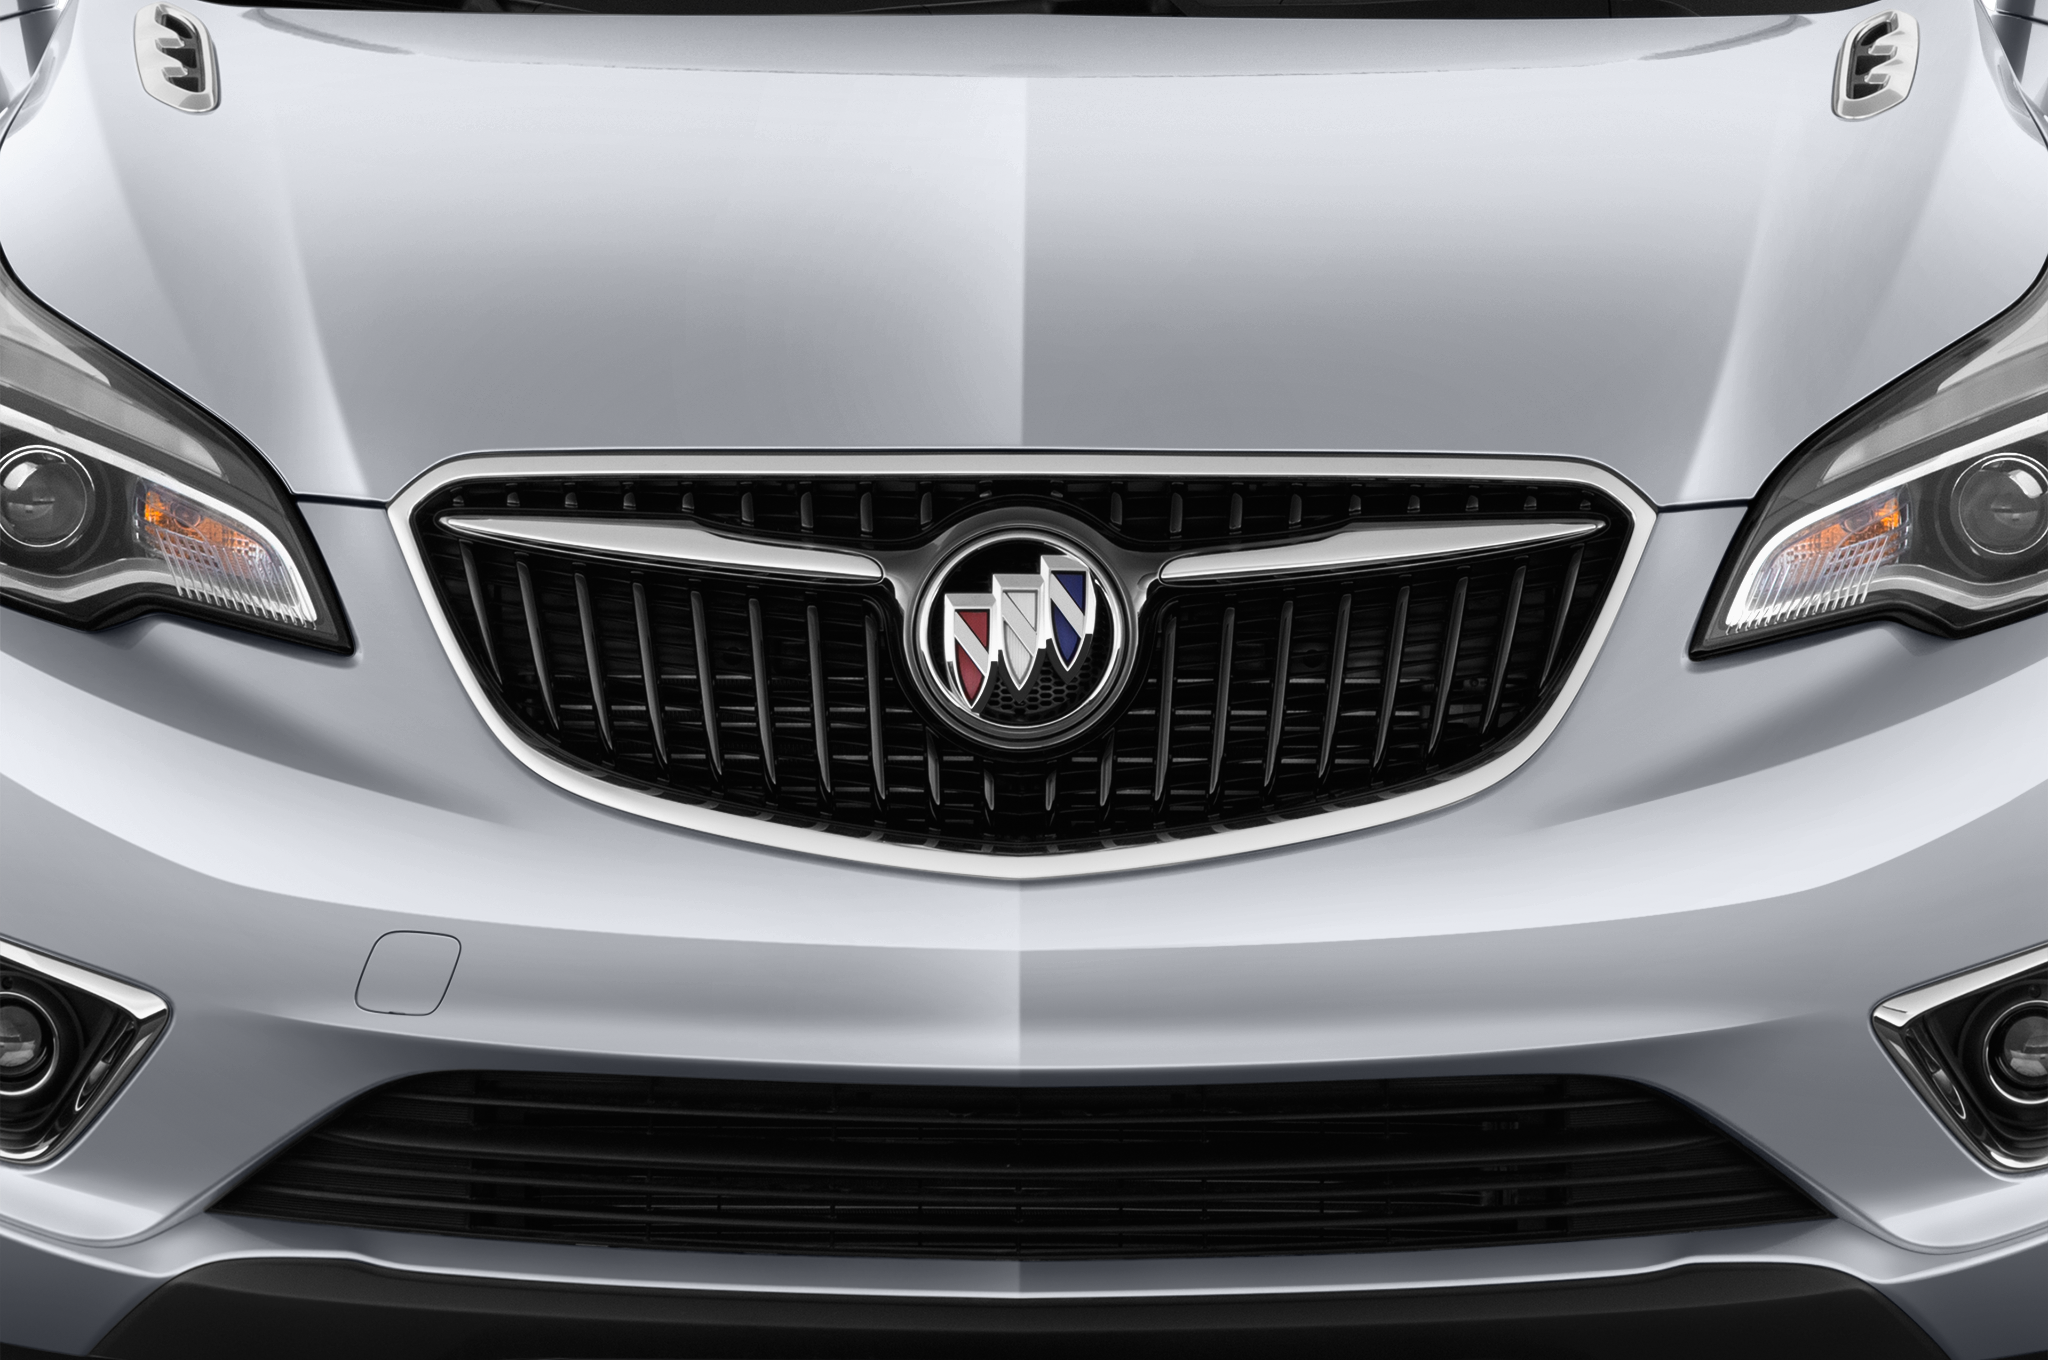 2019 New and Future Cars: 2020 Buick Enspire | Automobile ...